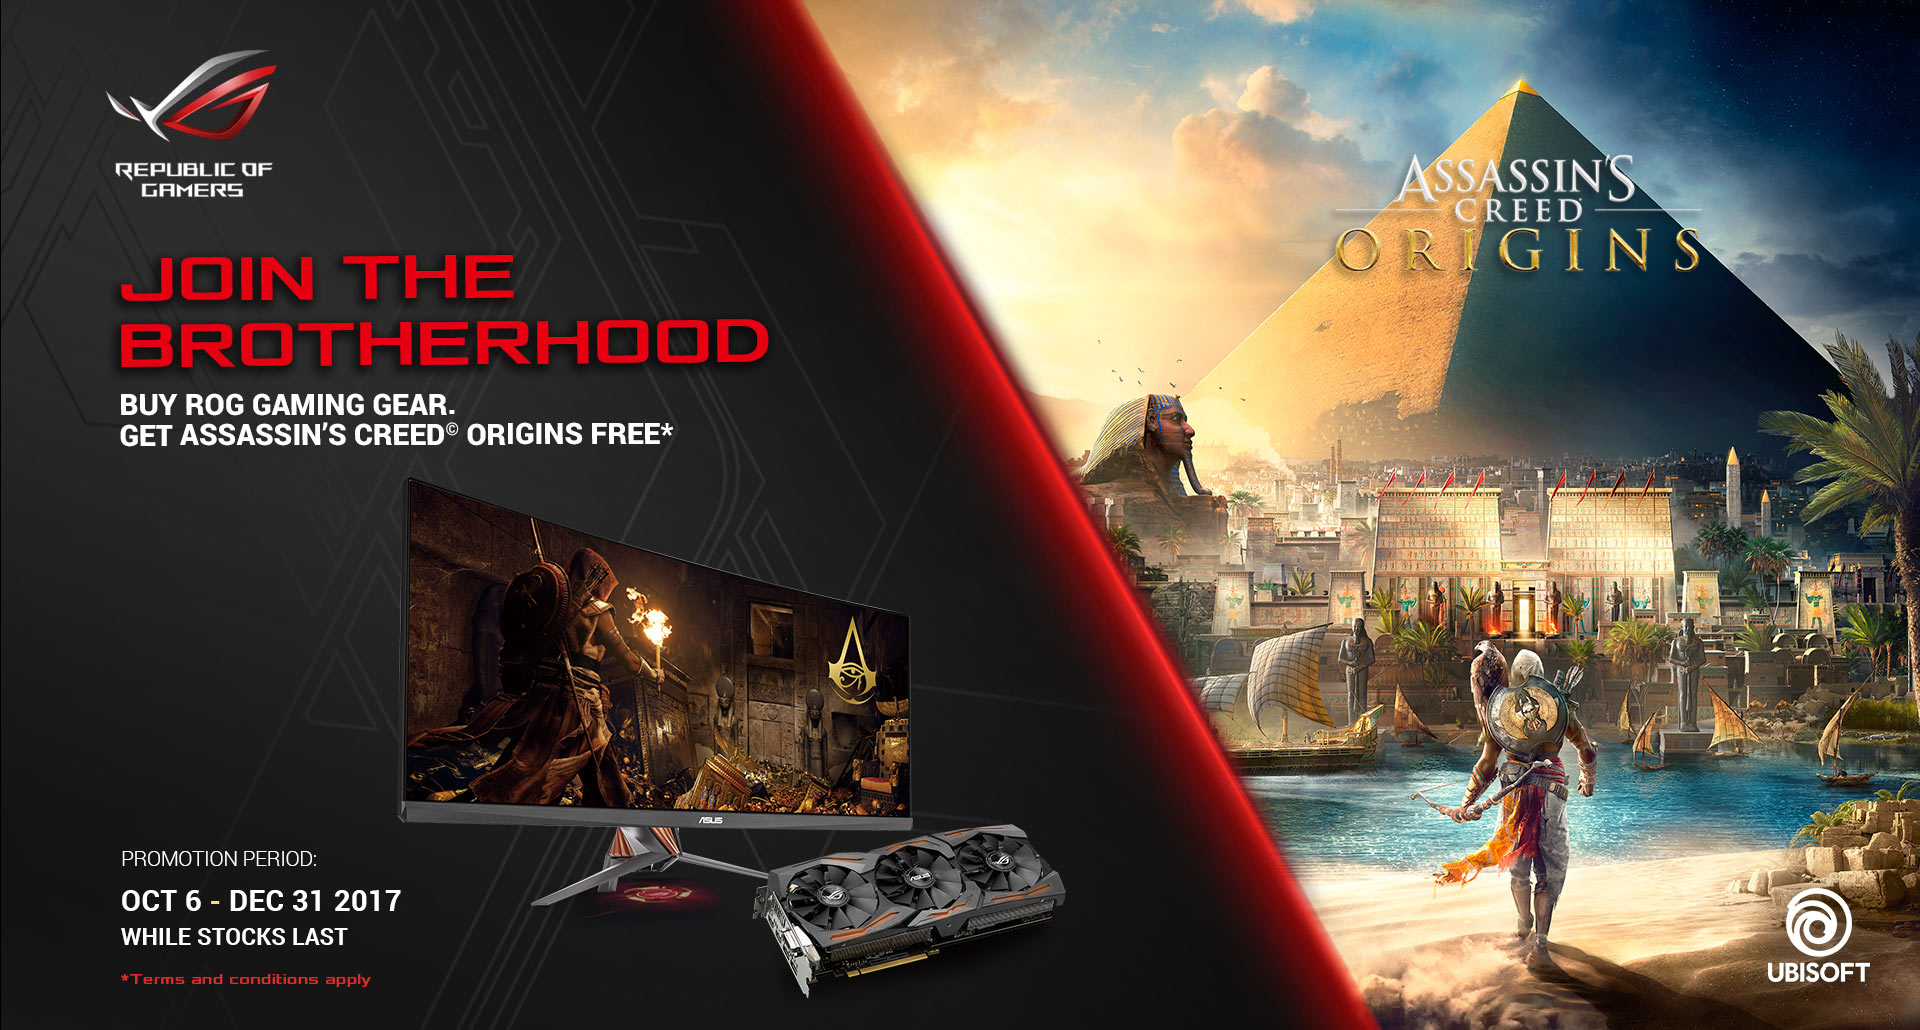 ASUS Assassin's Creed Origins Promotion